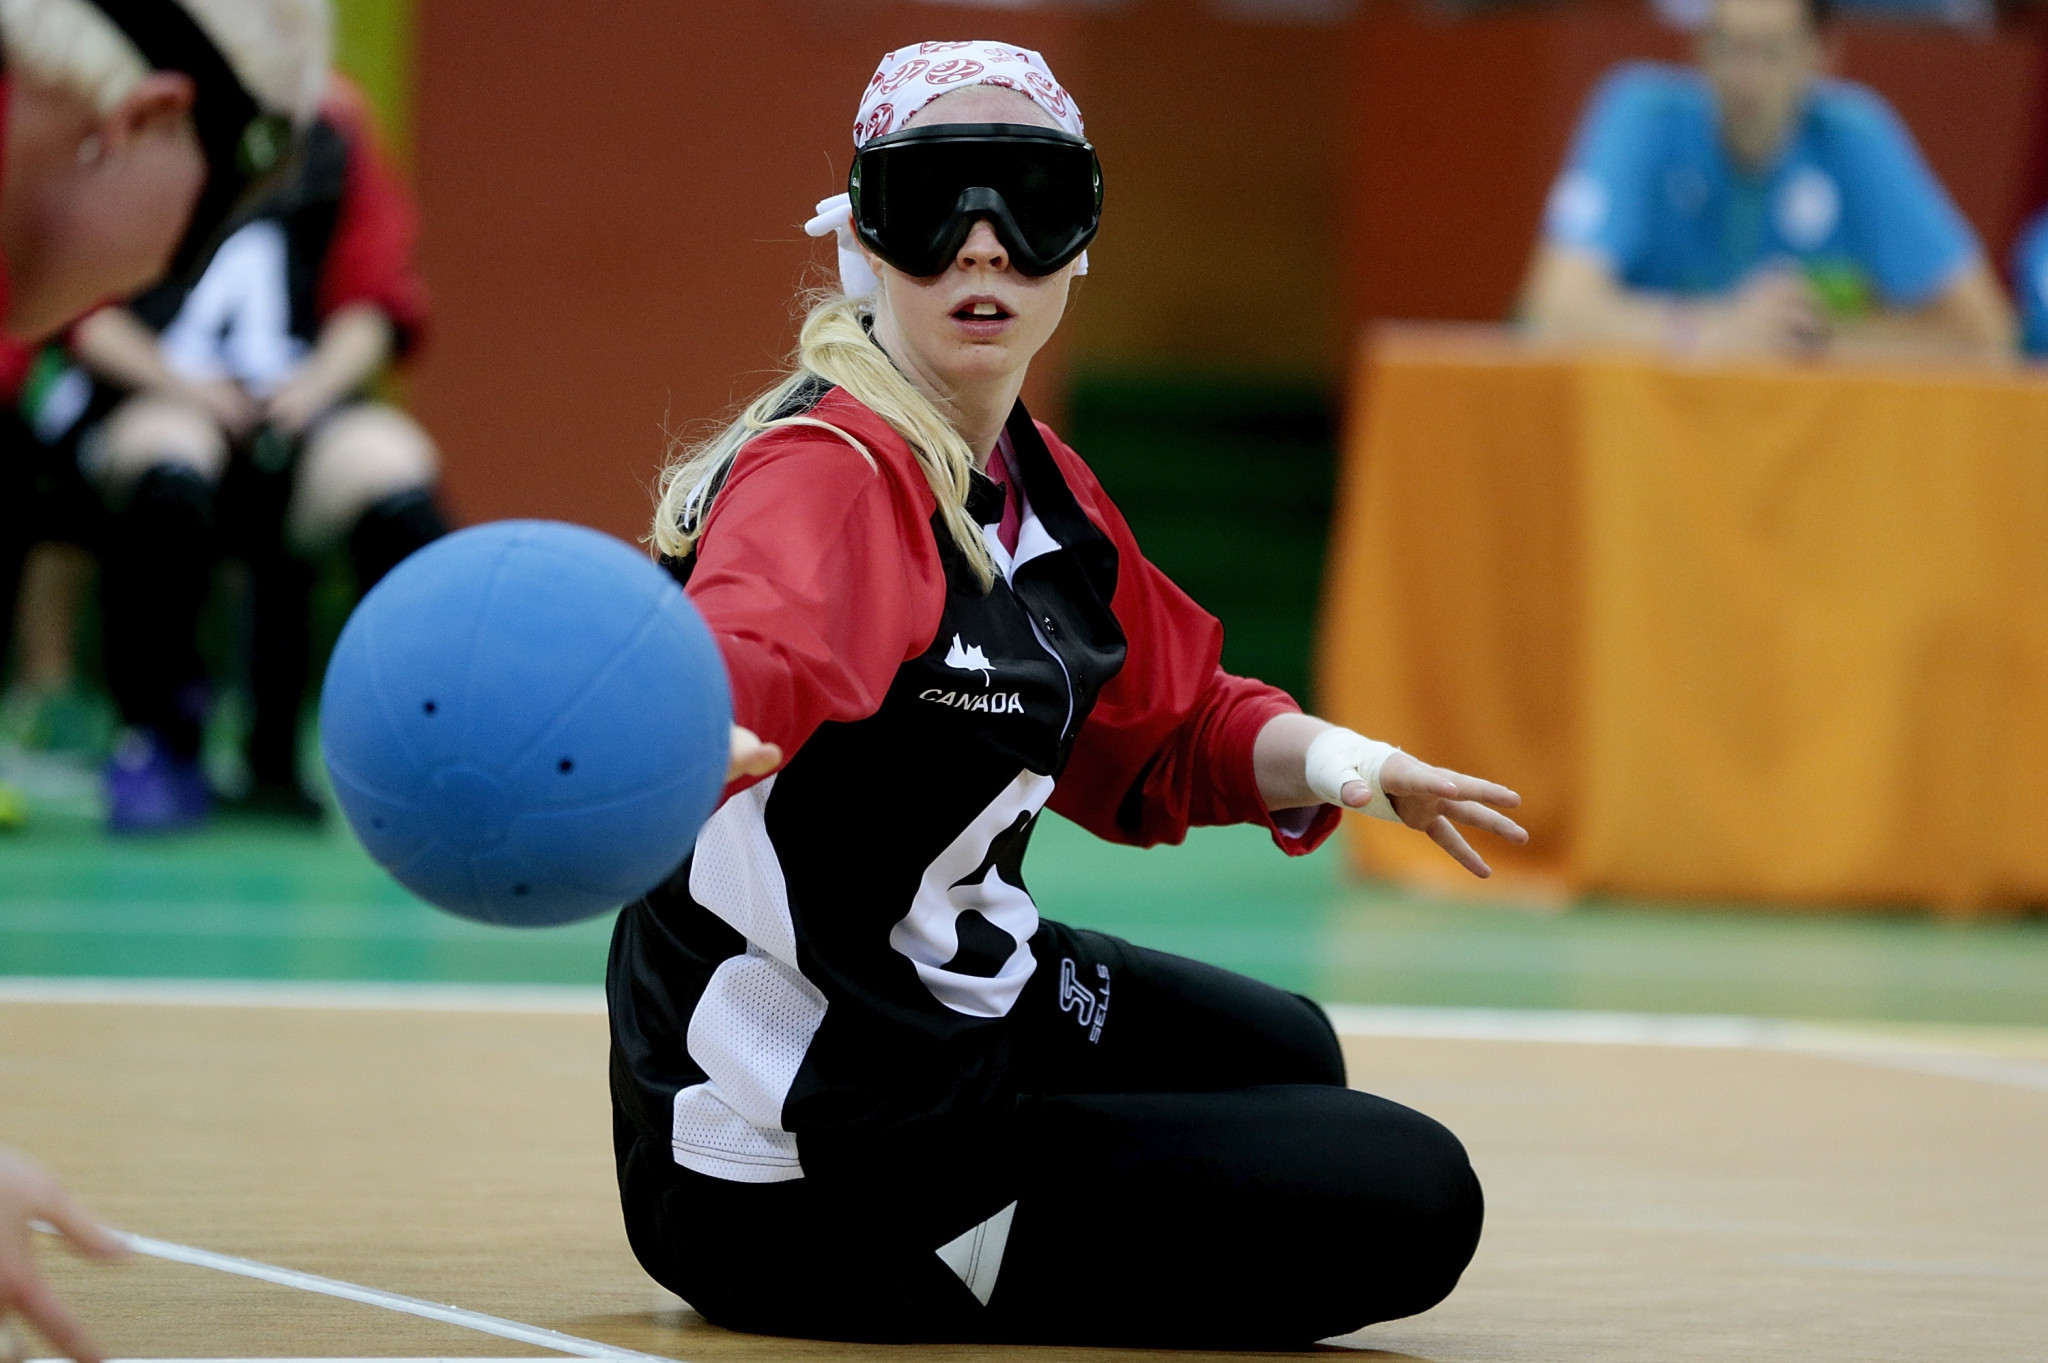 IBSA announce changes to goalball world rankings system